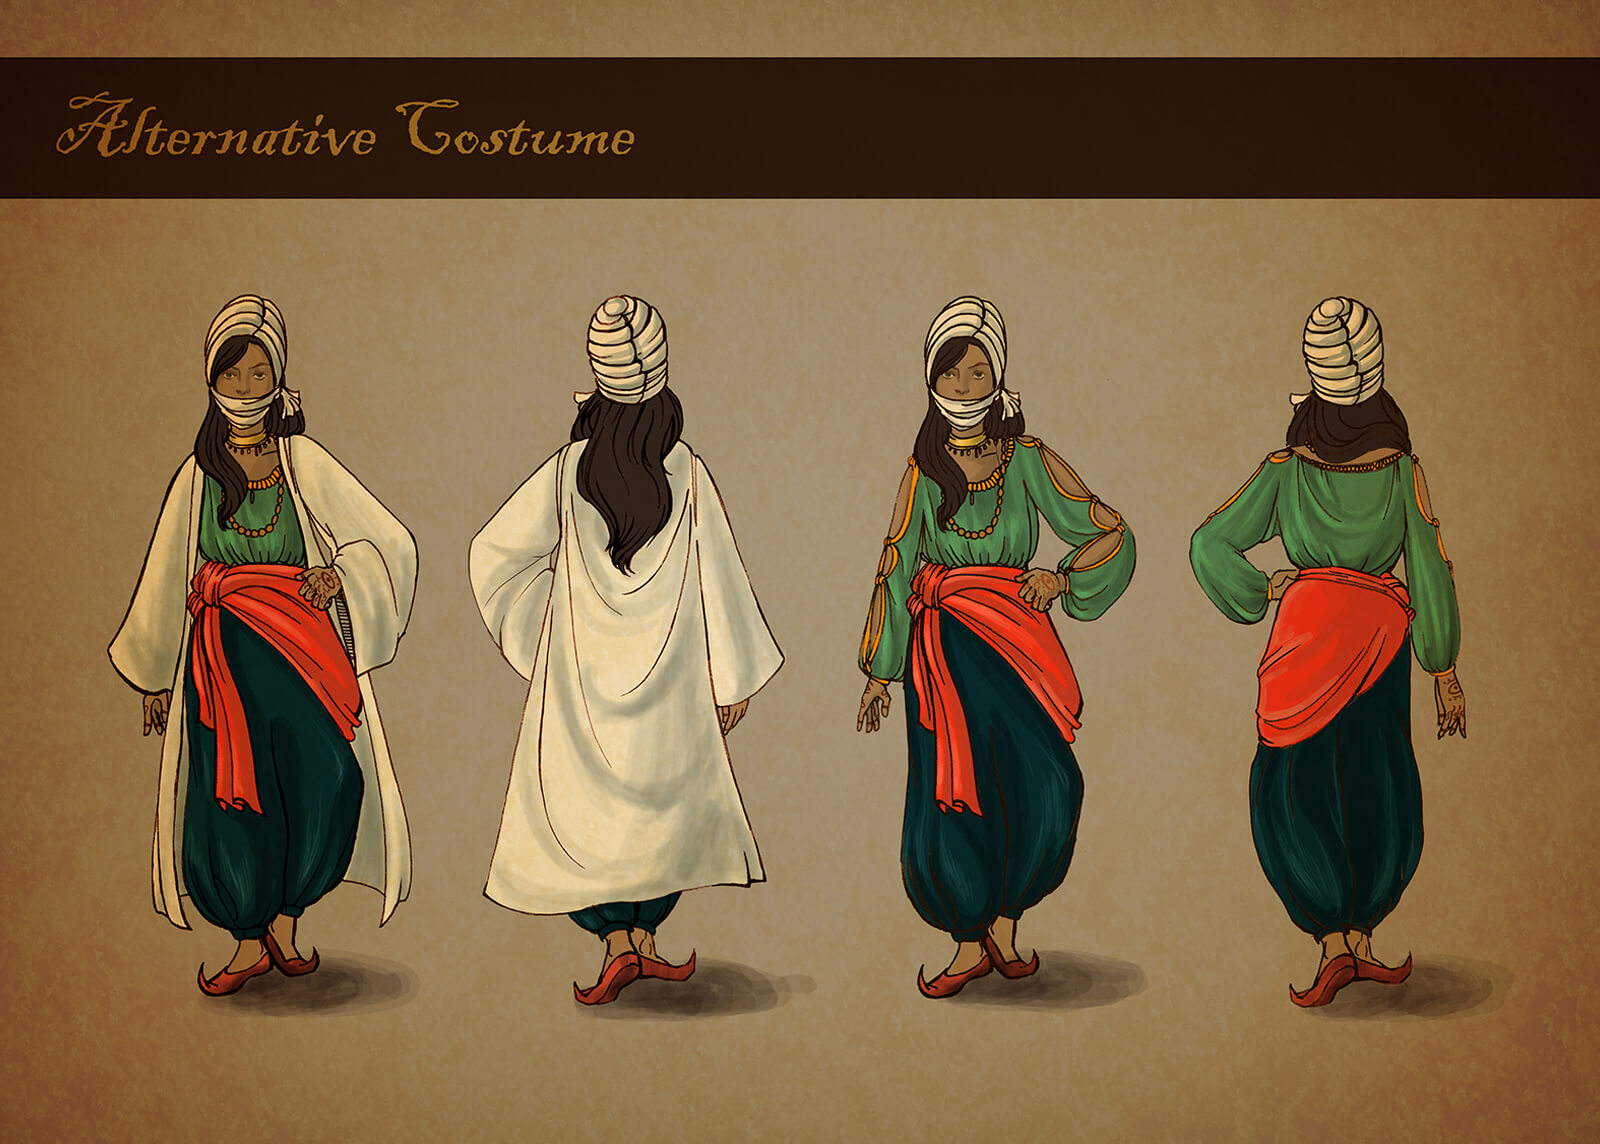 Concept painting of costume for Sangre de Salomon, a red, green, and blue medieval Arabic wear from different angles